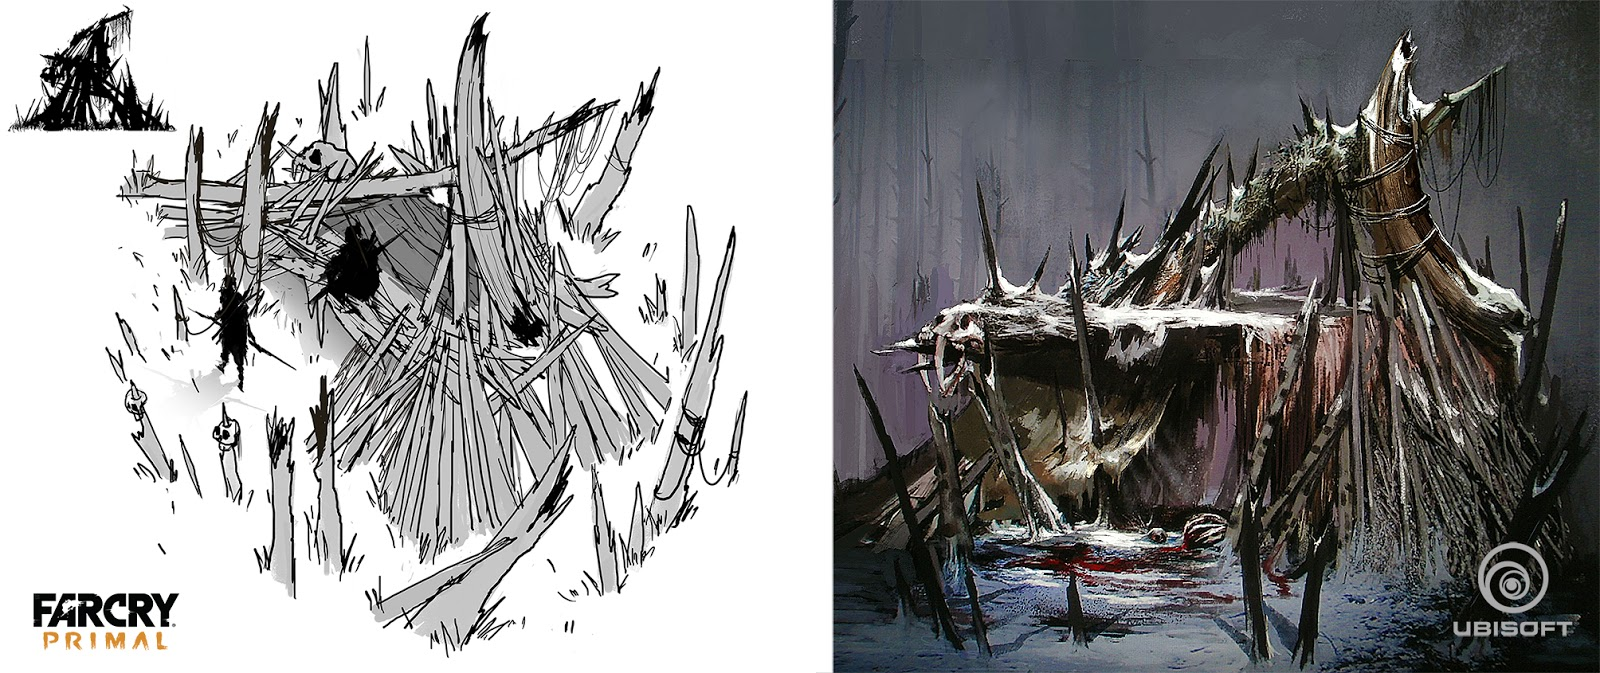 The Last Ticket To Mars More Farcry Primal Concept Art